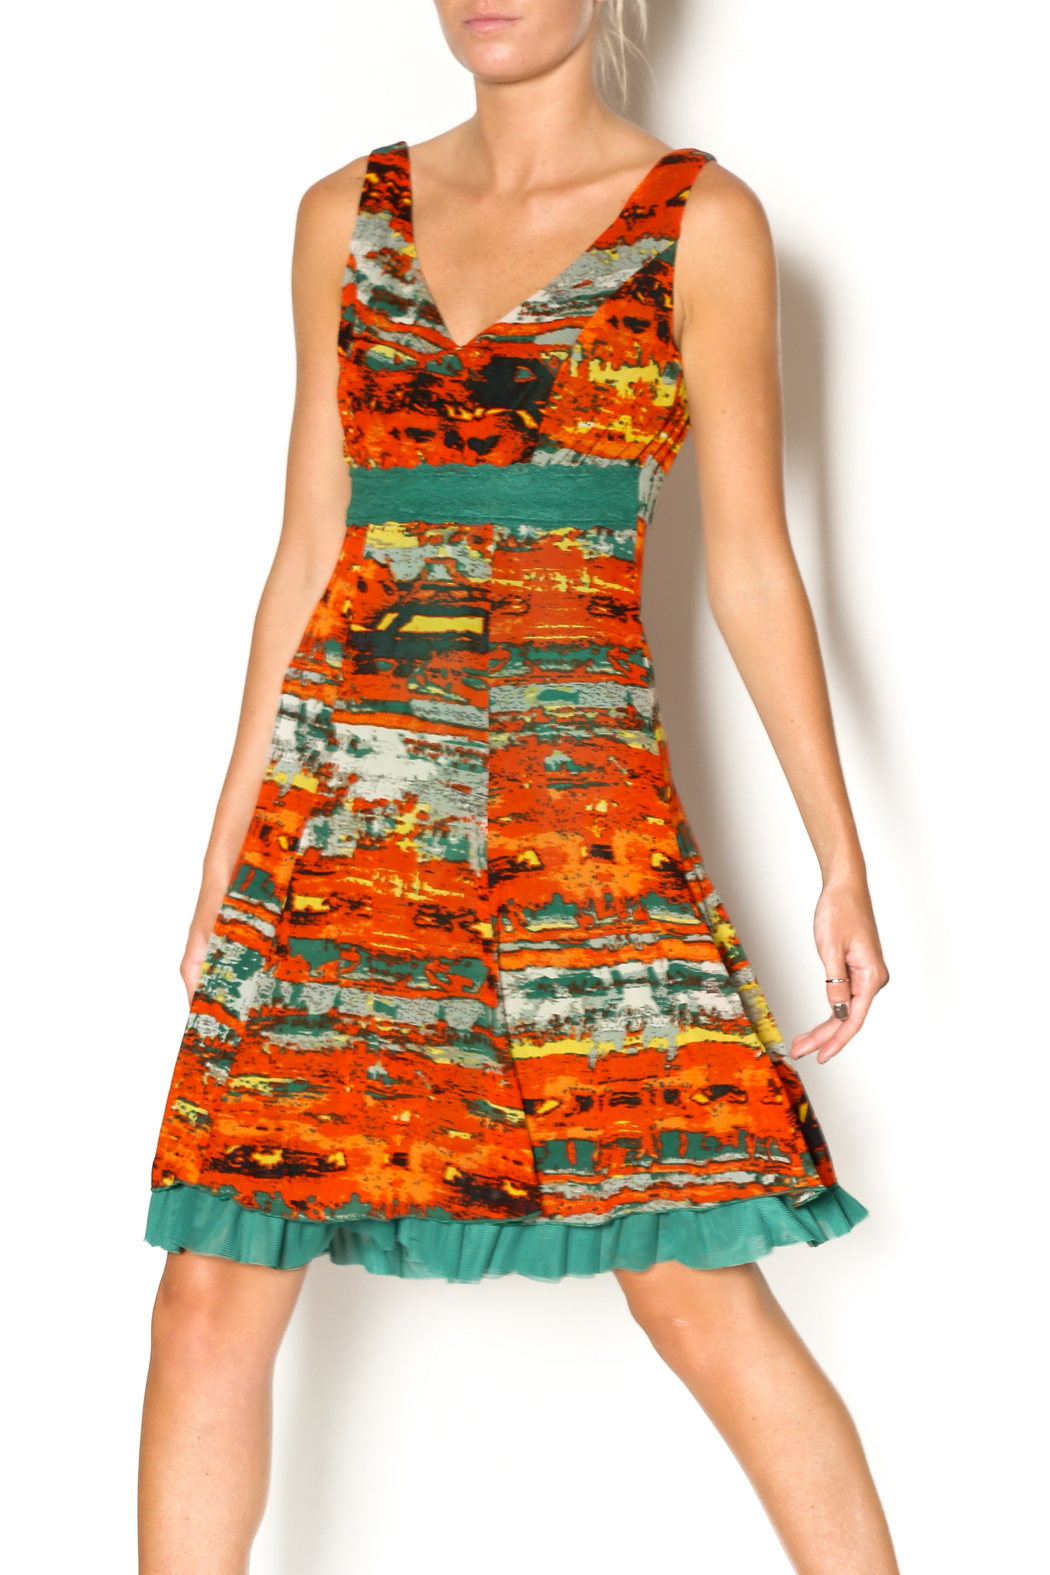 Lulu-H Layered Print Dress - Main Image